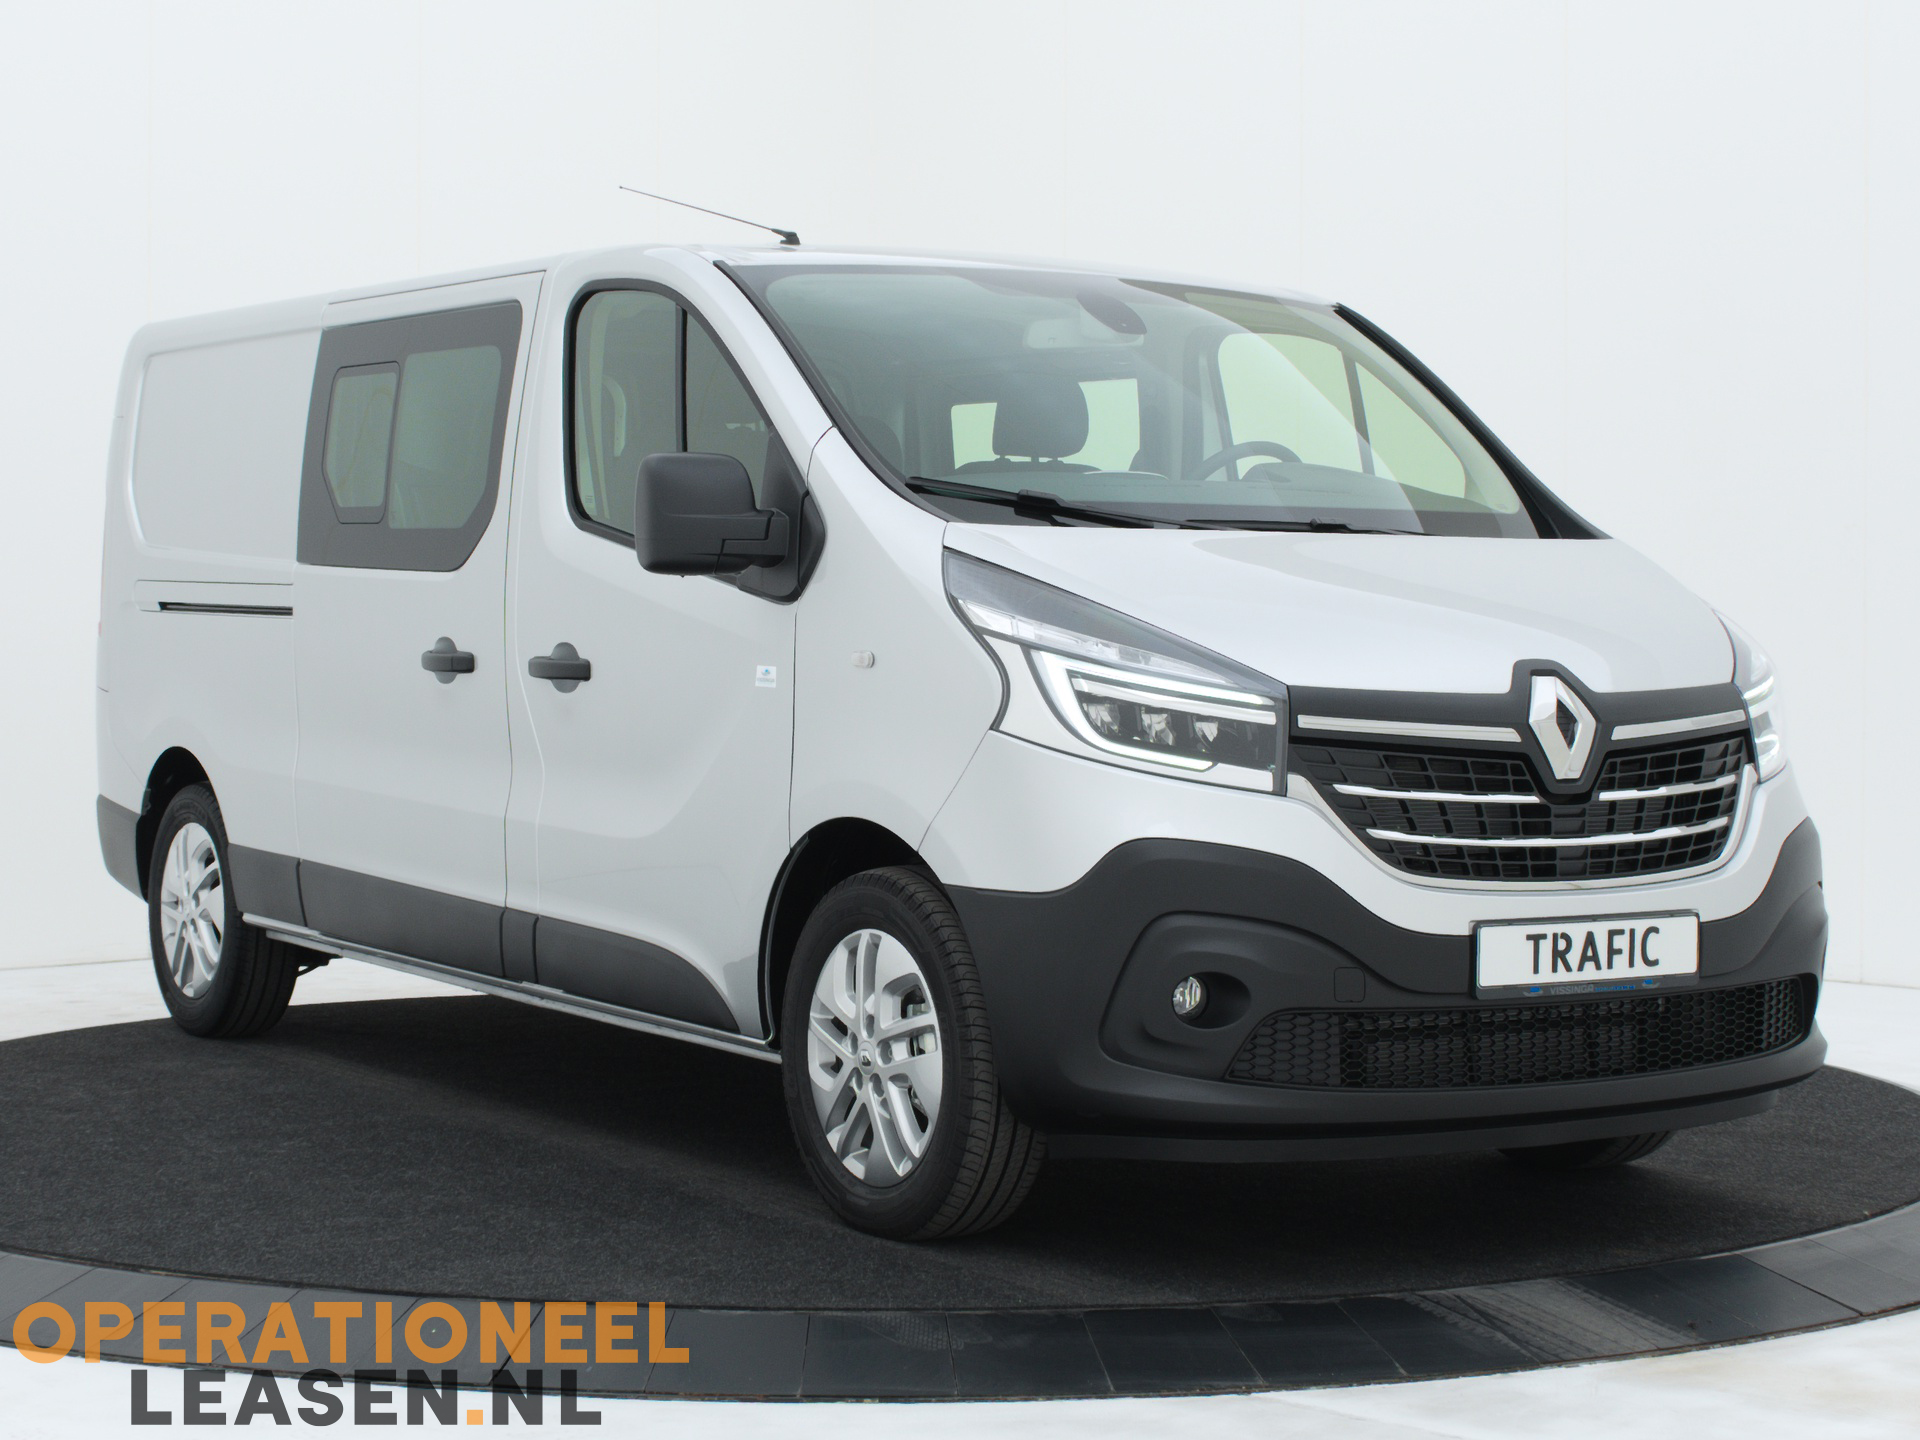 Operational lease Renault master traffic-7